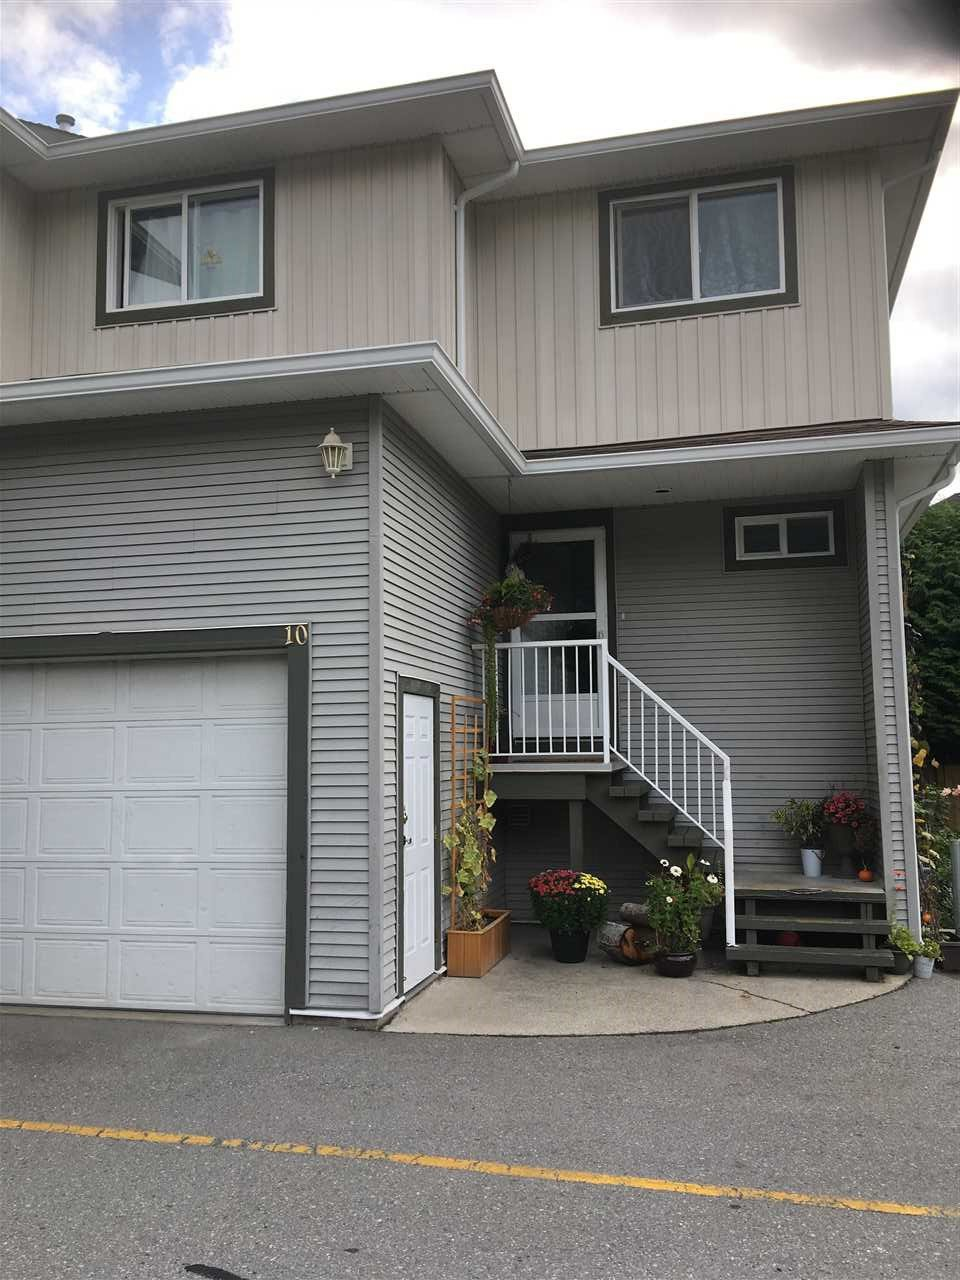 Main Photo: 10 39754 Government Road in Squamish: Townhouse for sale : MLS®# R2406689